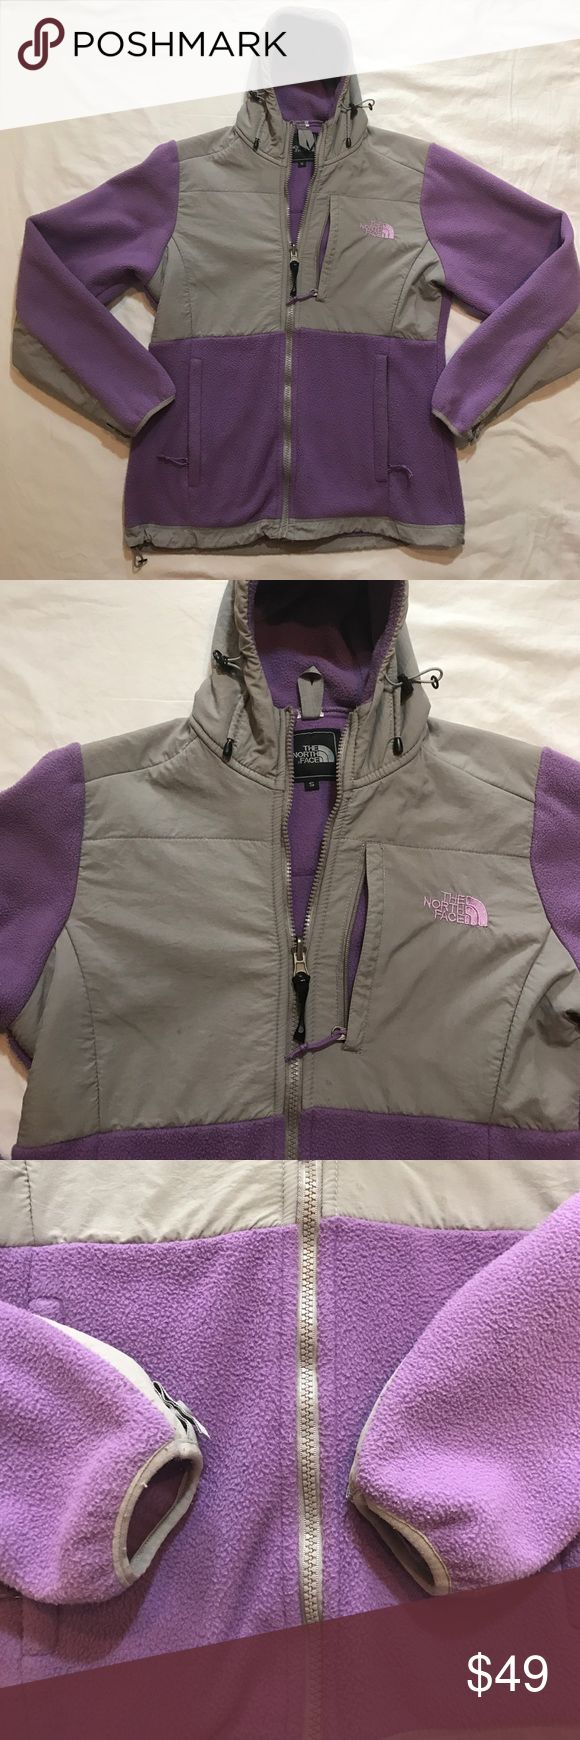 North Face Lavender Purple Hooded Zip up Jacket Beautiful pastel Lavender purple jacket by the North Face. Some wear, preowned. Size women's small. Make me an offer or Bundle discount available. North Face Jackets & Coats